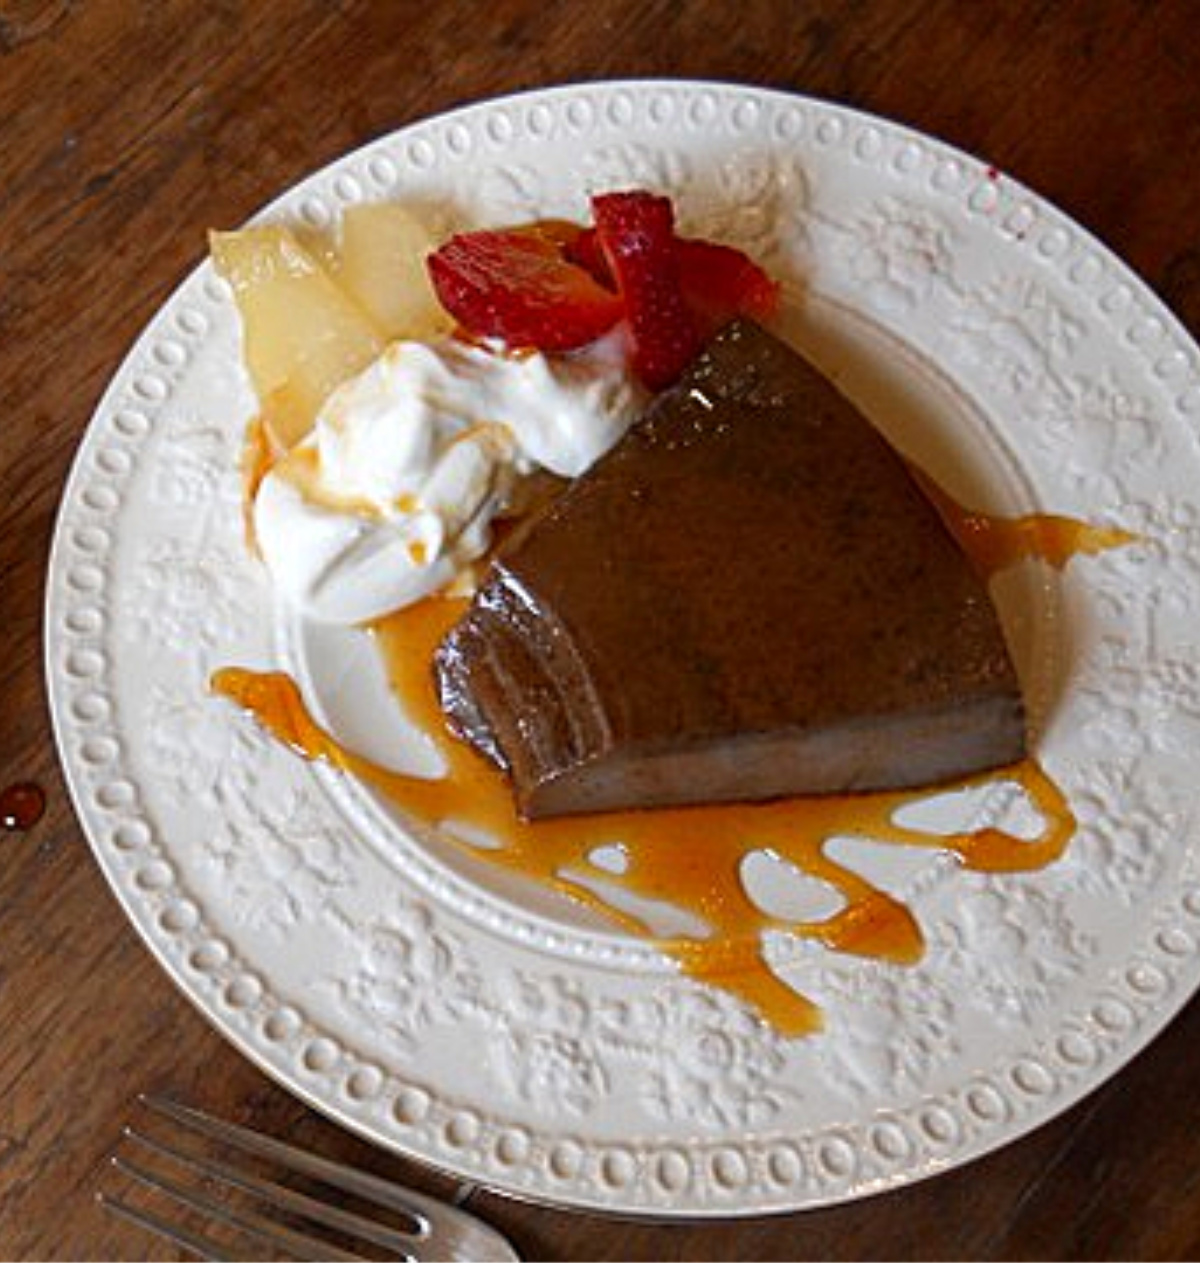 Serving of chocolate flan on white plate, wooden table